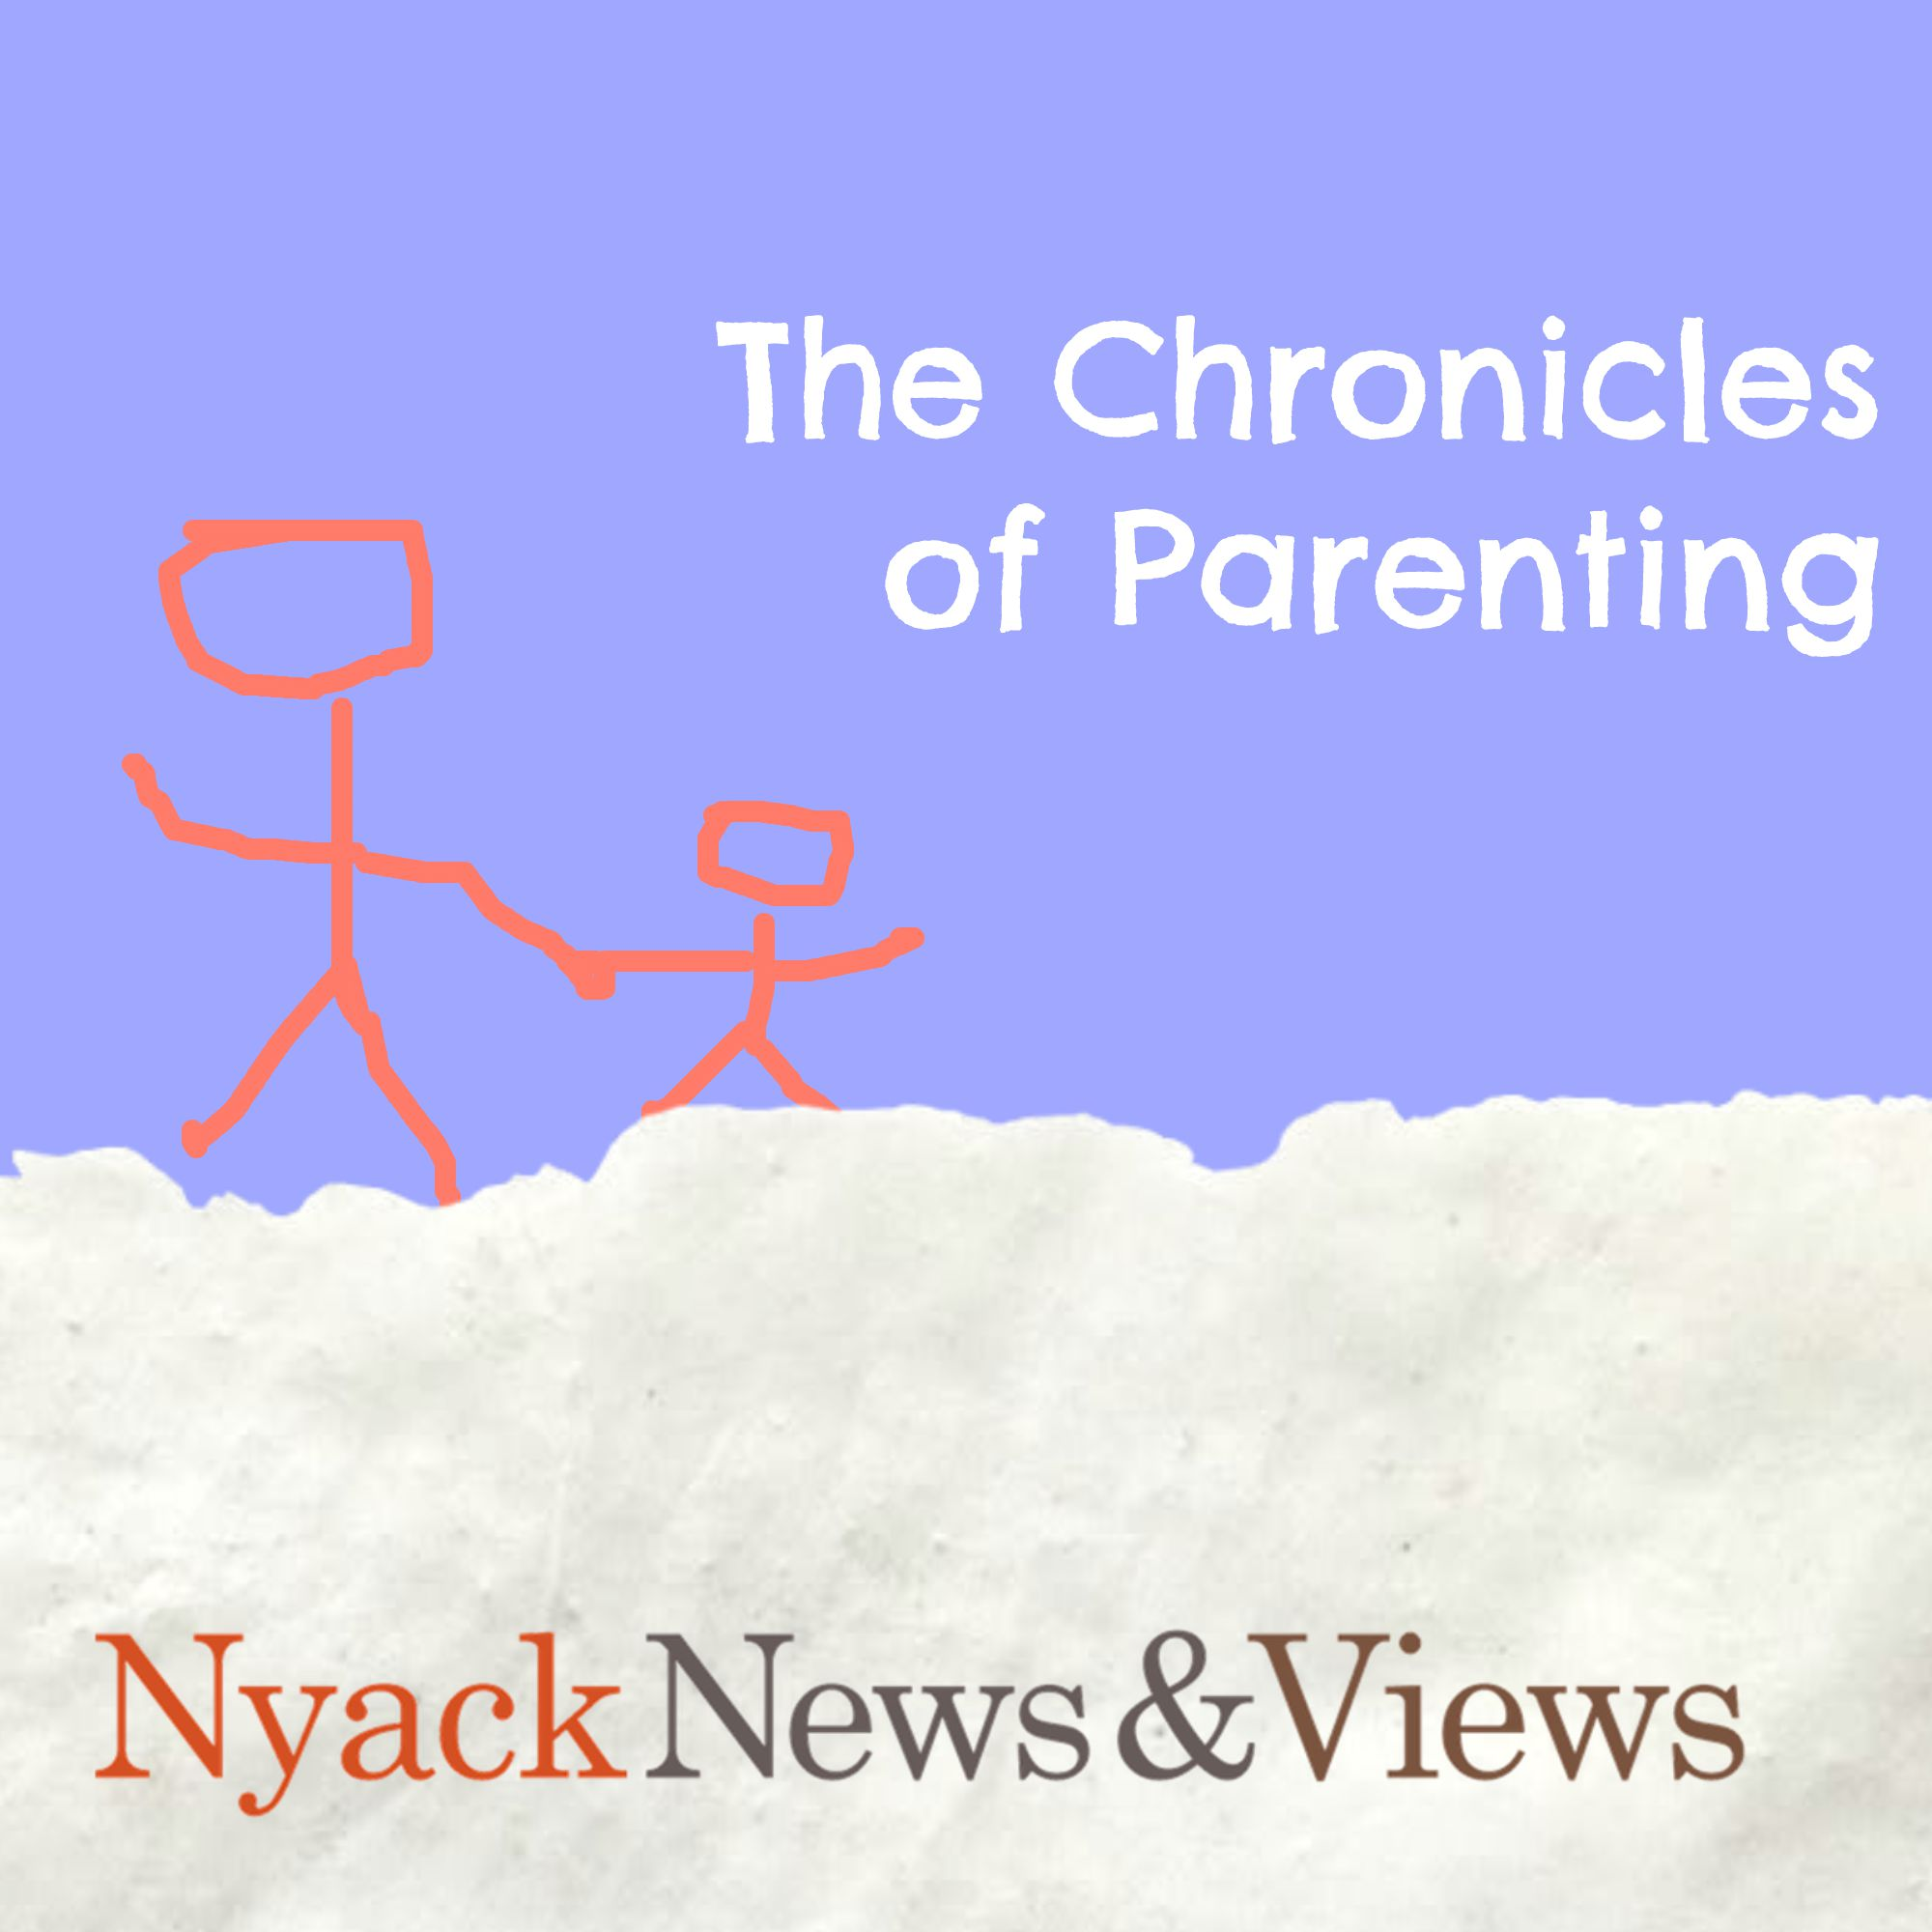 Chronicles of Parenting ad